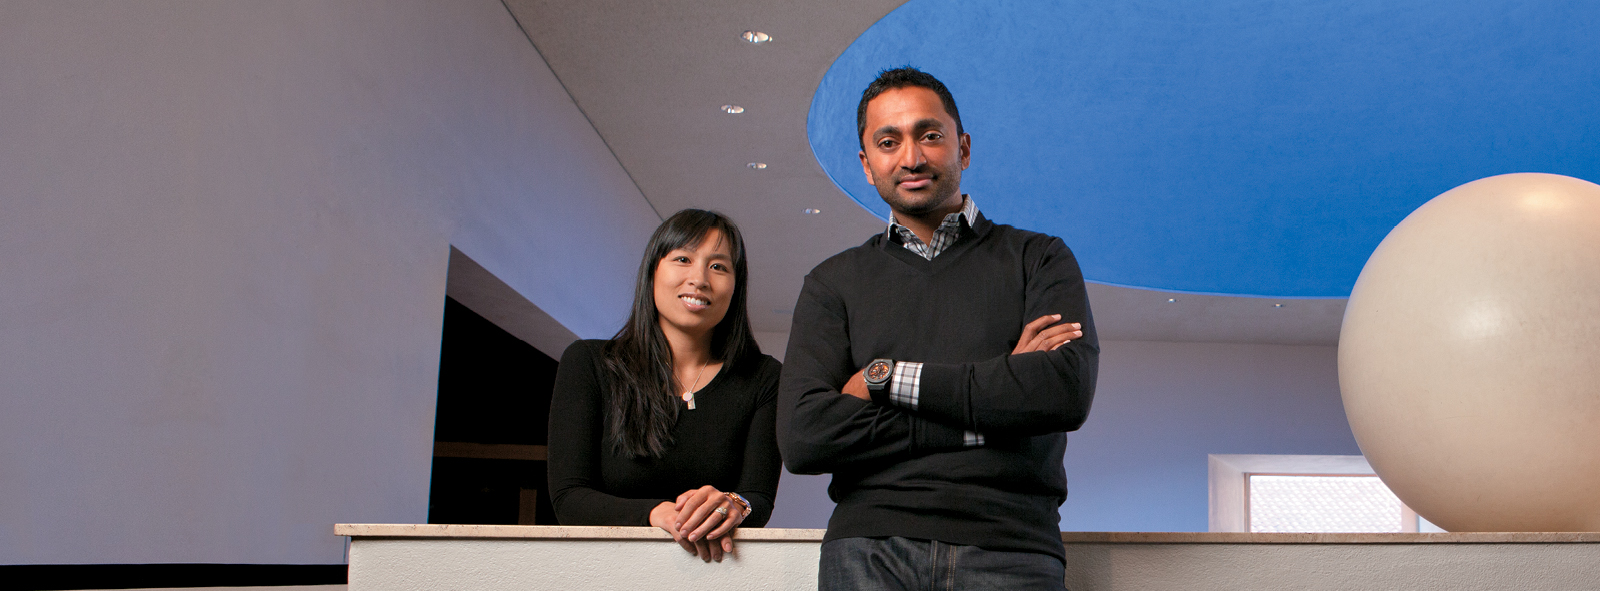 Select to access video of First Republic Venture Capital / Private Equity client(s) Brigette Lau and Chamath Palihapitiya